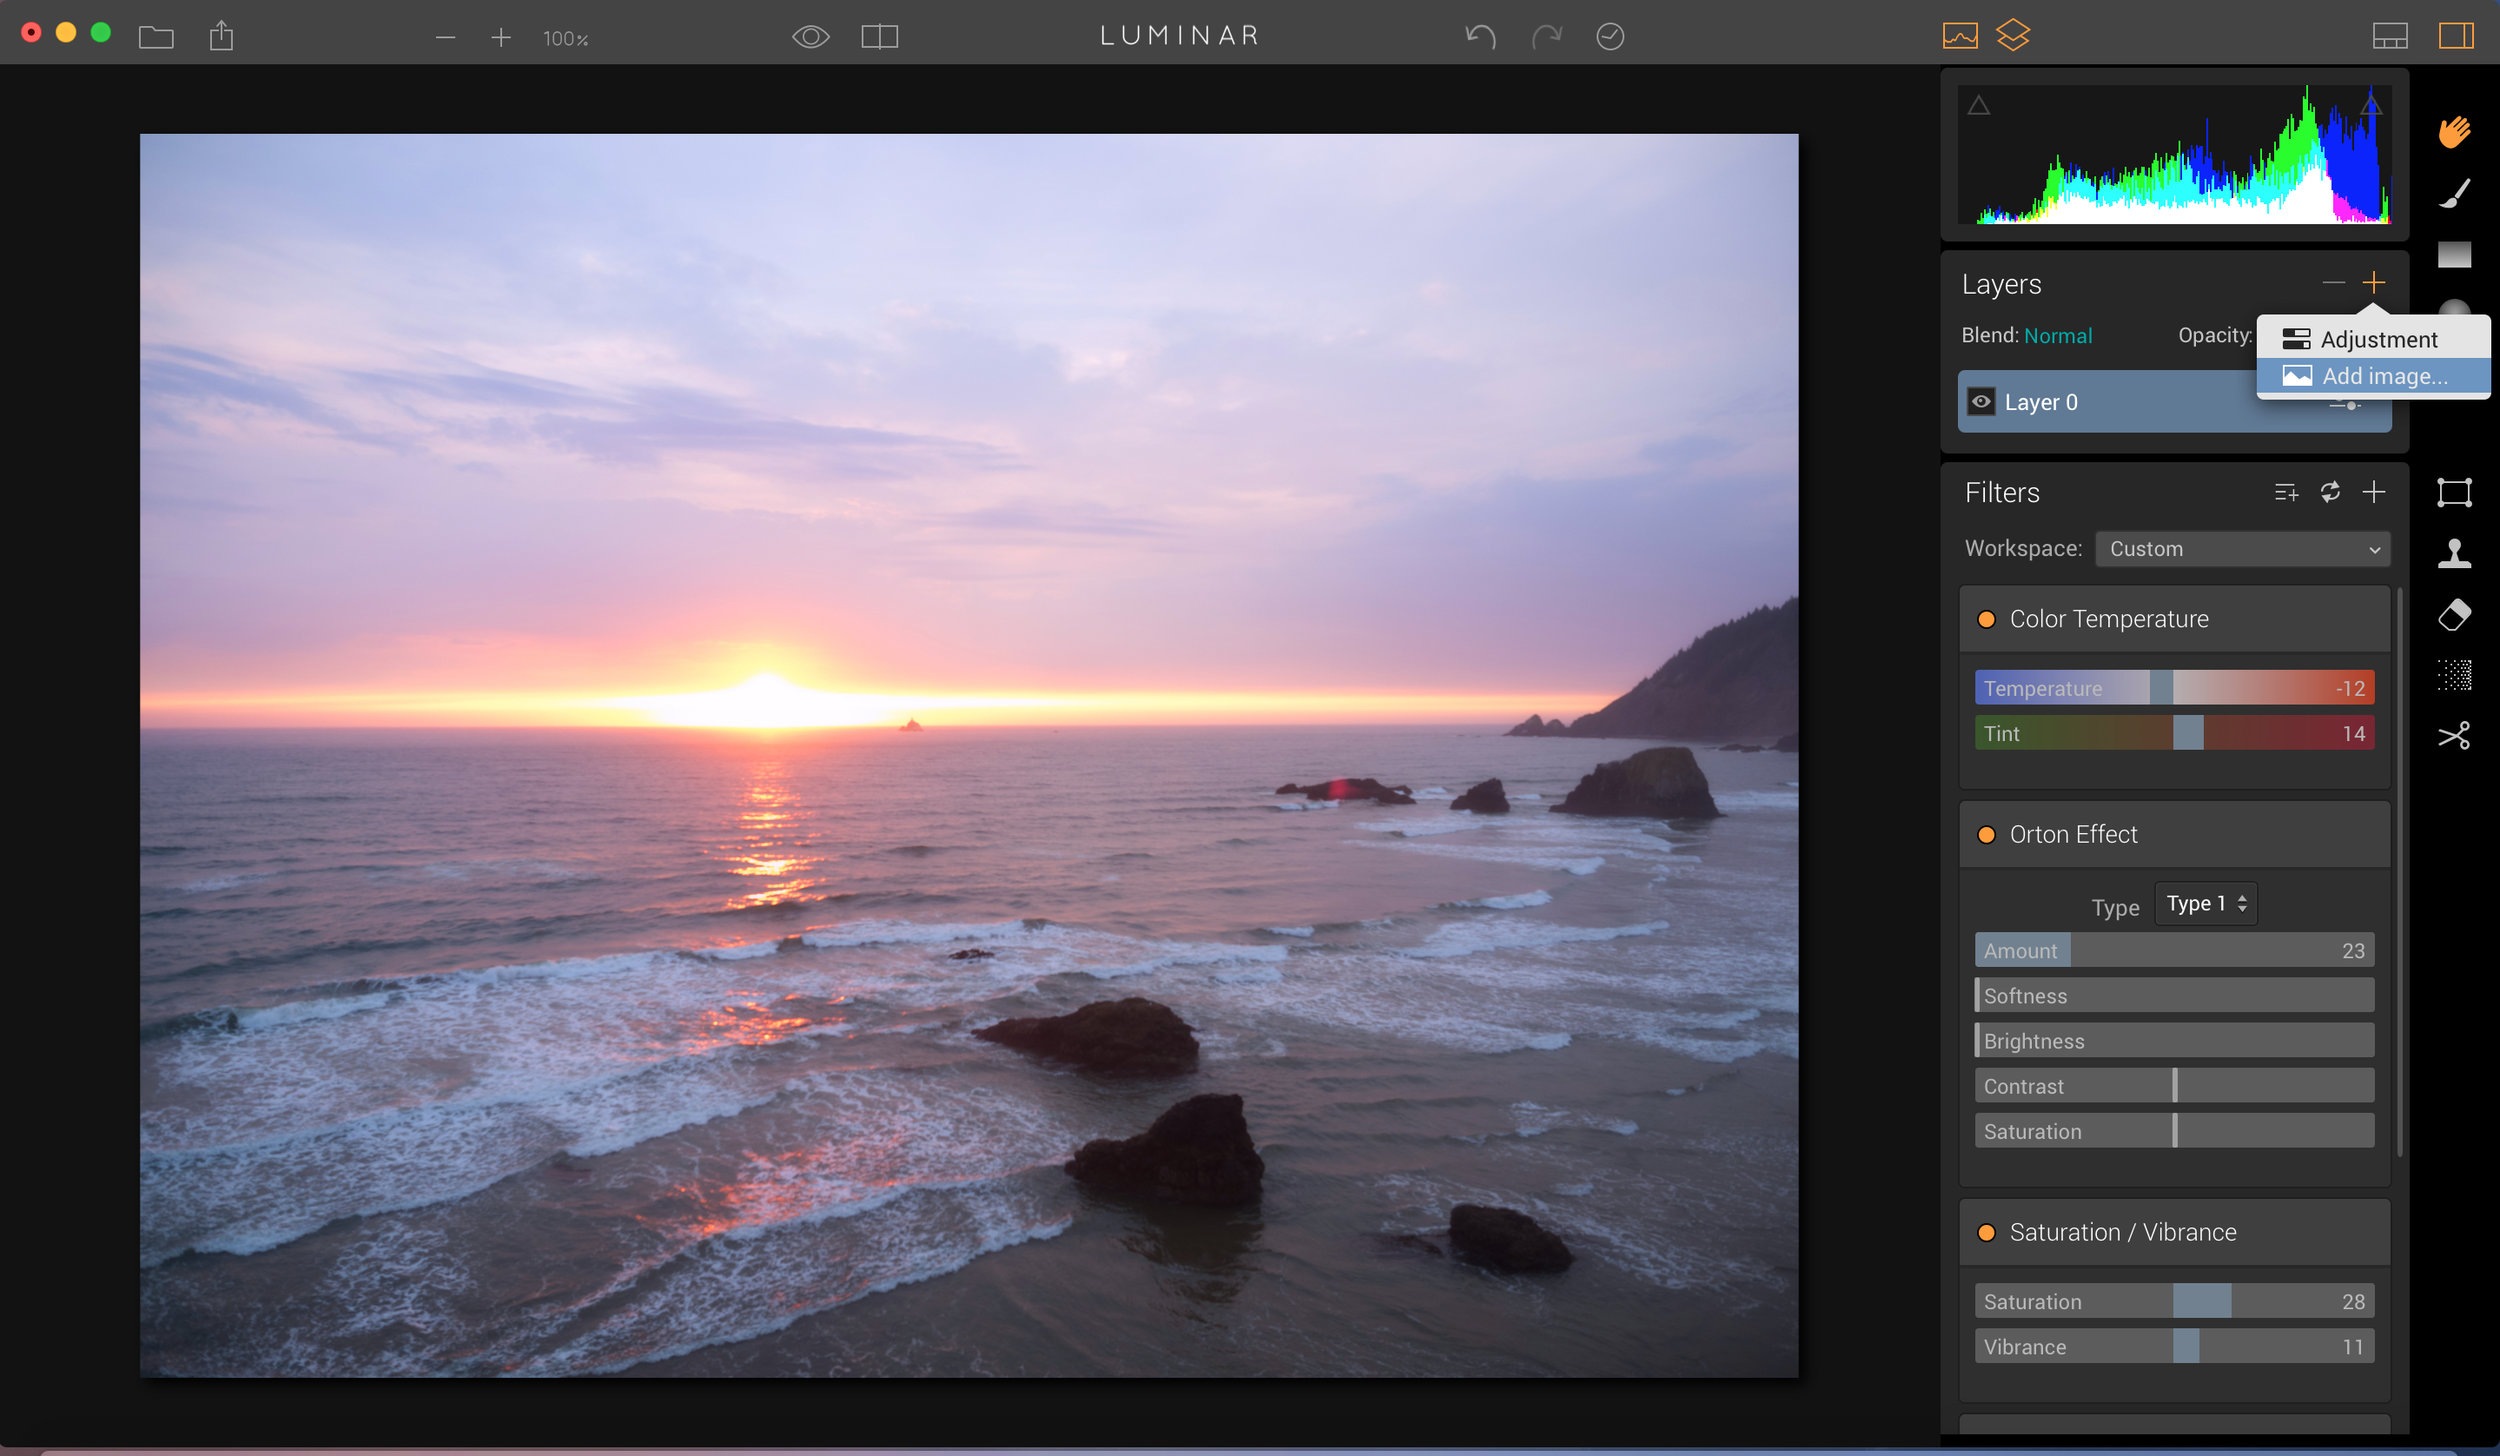 """Click on + in the layers panel to add a new layer, and choose """"add Image""""."""